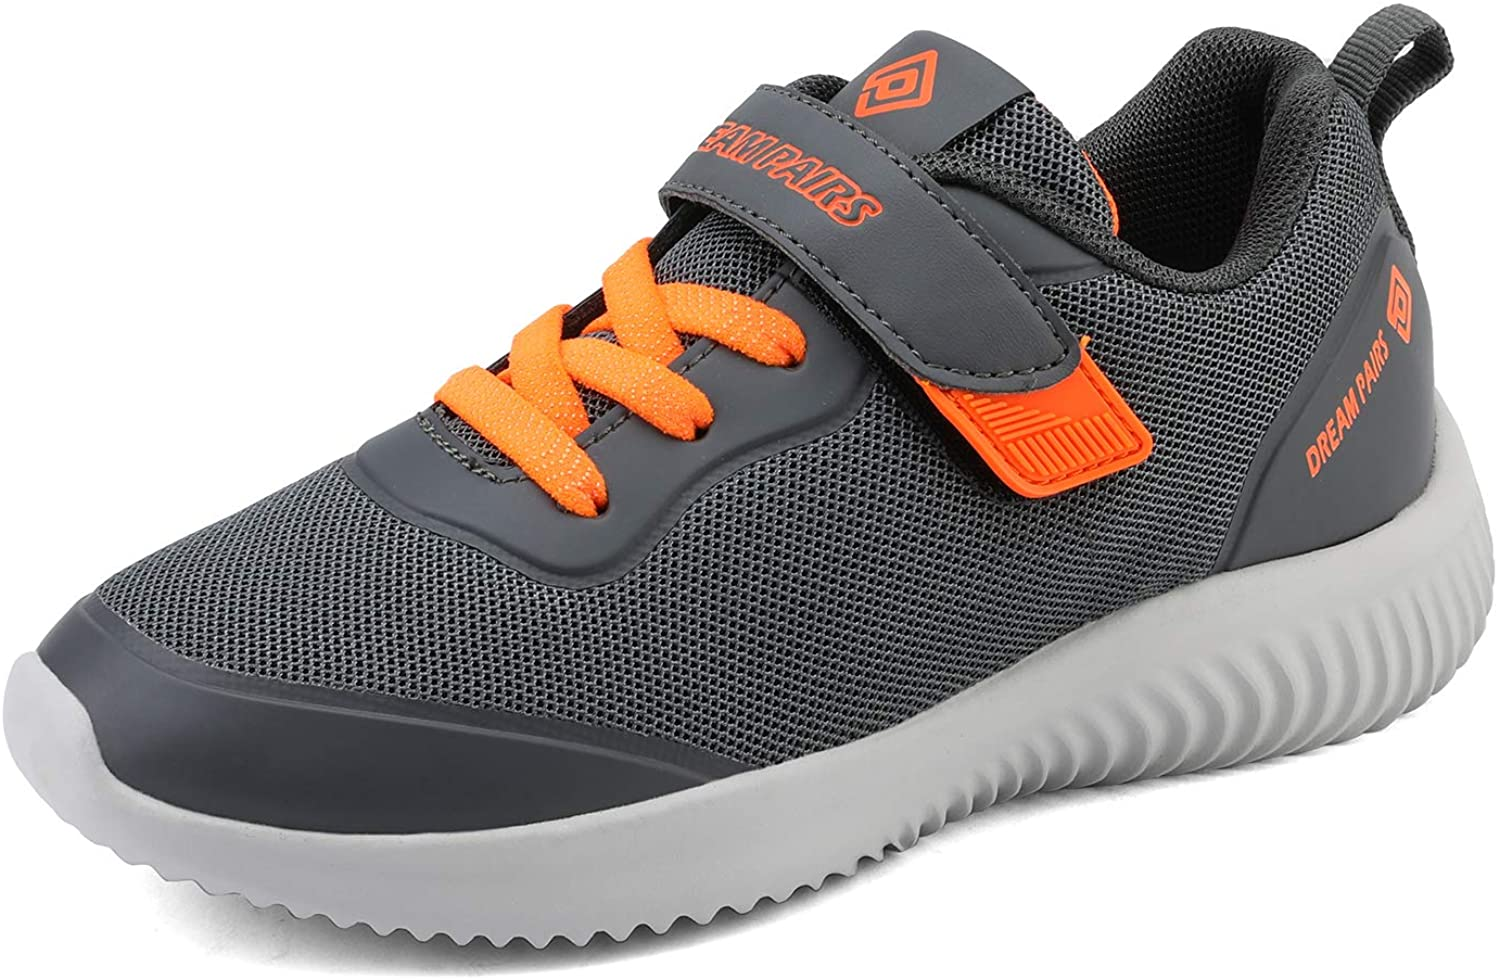 DREAM Import PAIRS Boys Girls Tennis Shoes Ranking TOP9 Running Sports Snea Athletic